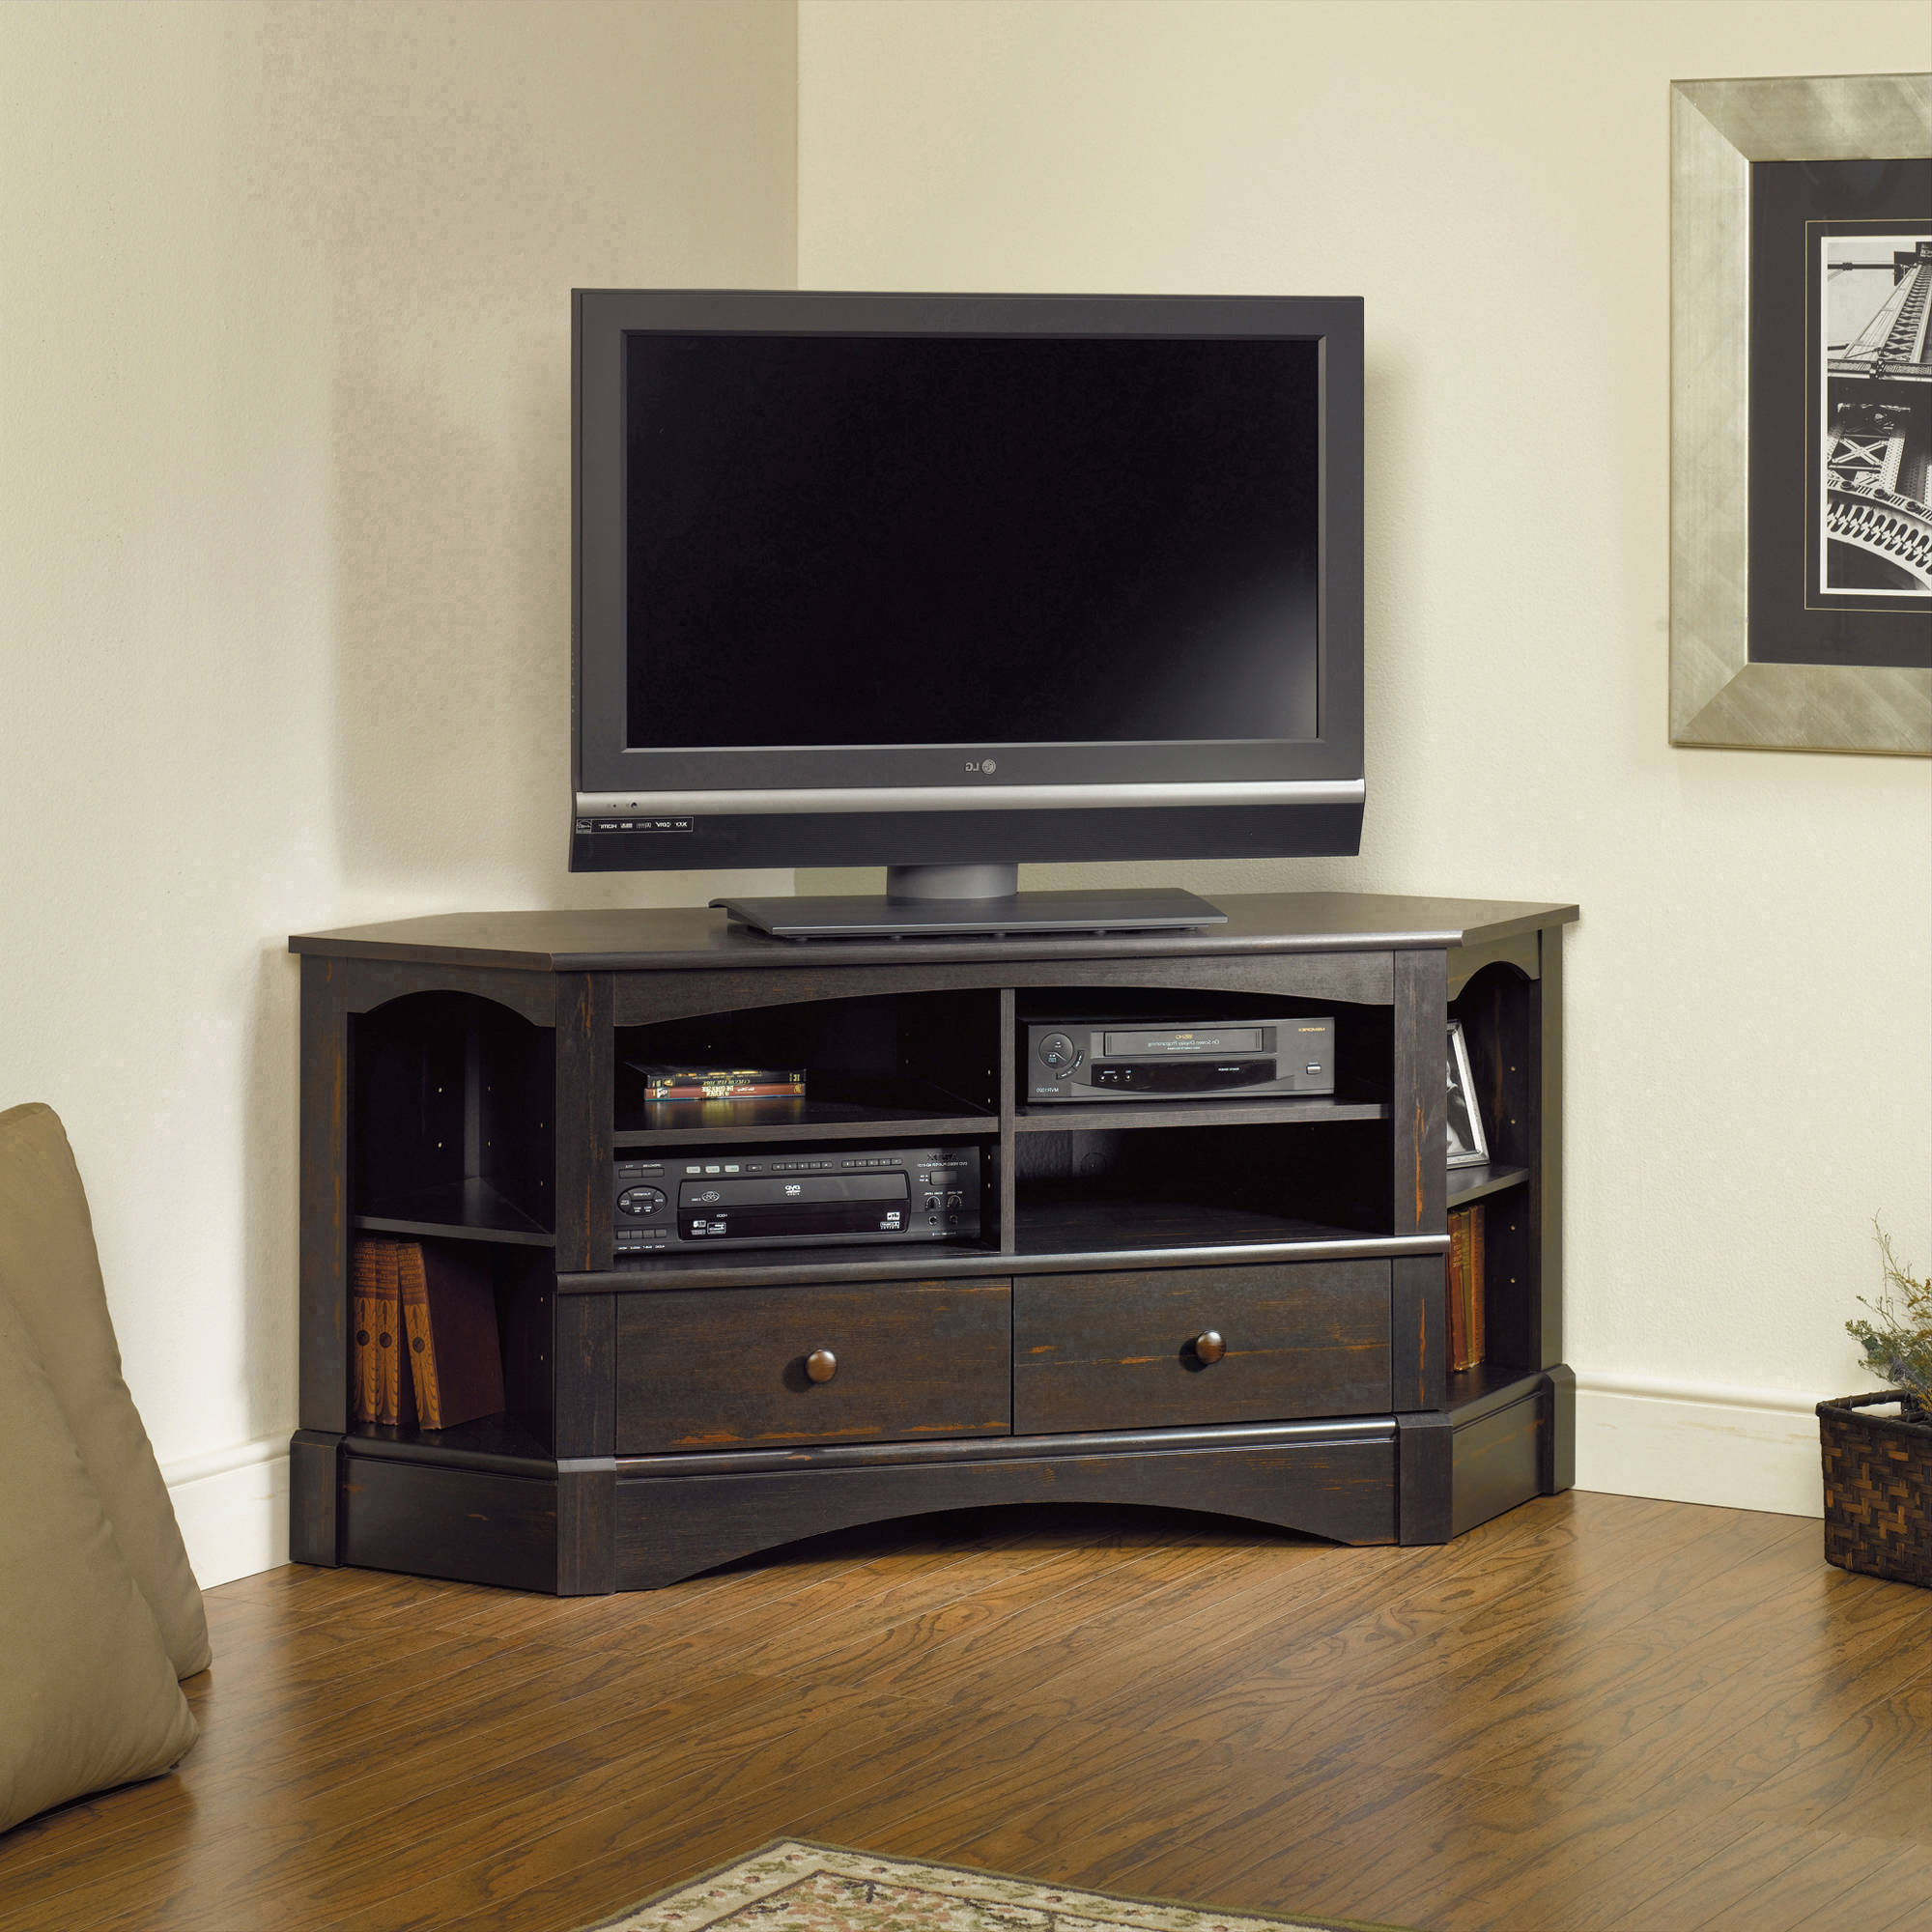 Oak Corner Tv Stand For 50 Inch Walmart Cabinet 60 Hooker Black Inside Well Known Corner Tv Stands For 60 Inch Tv (Gallery 16 of 20)